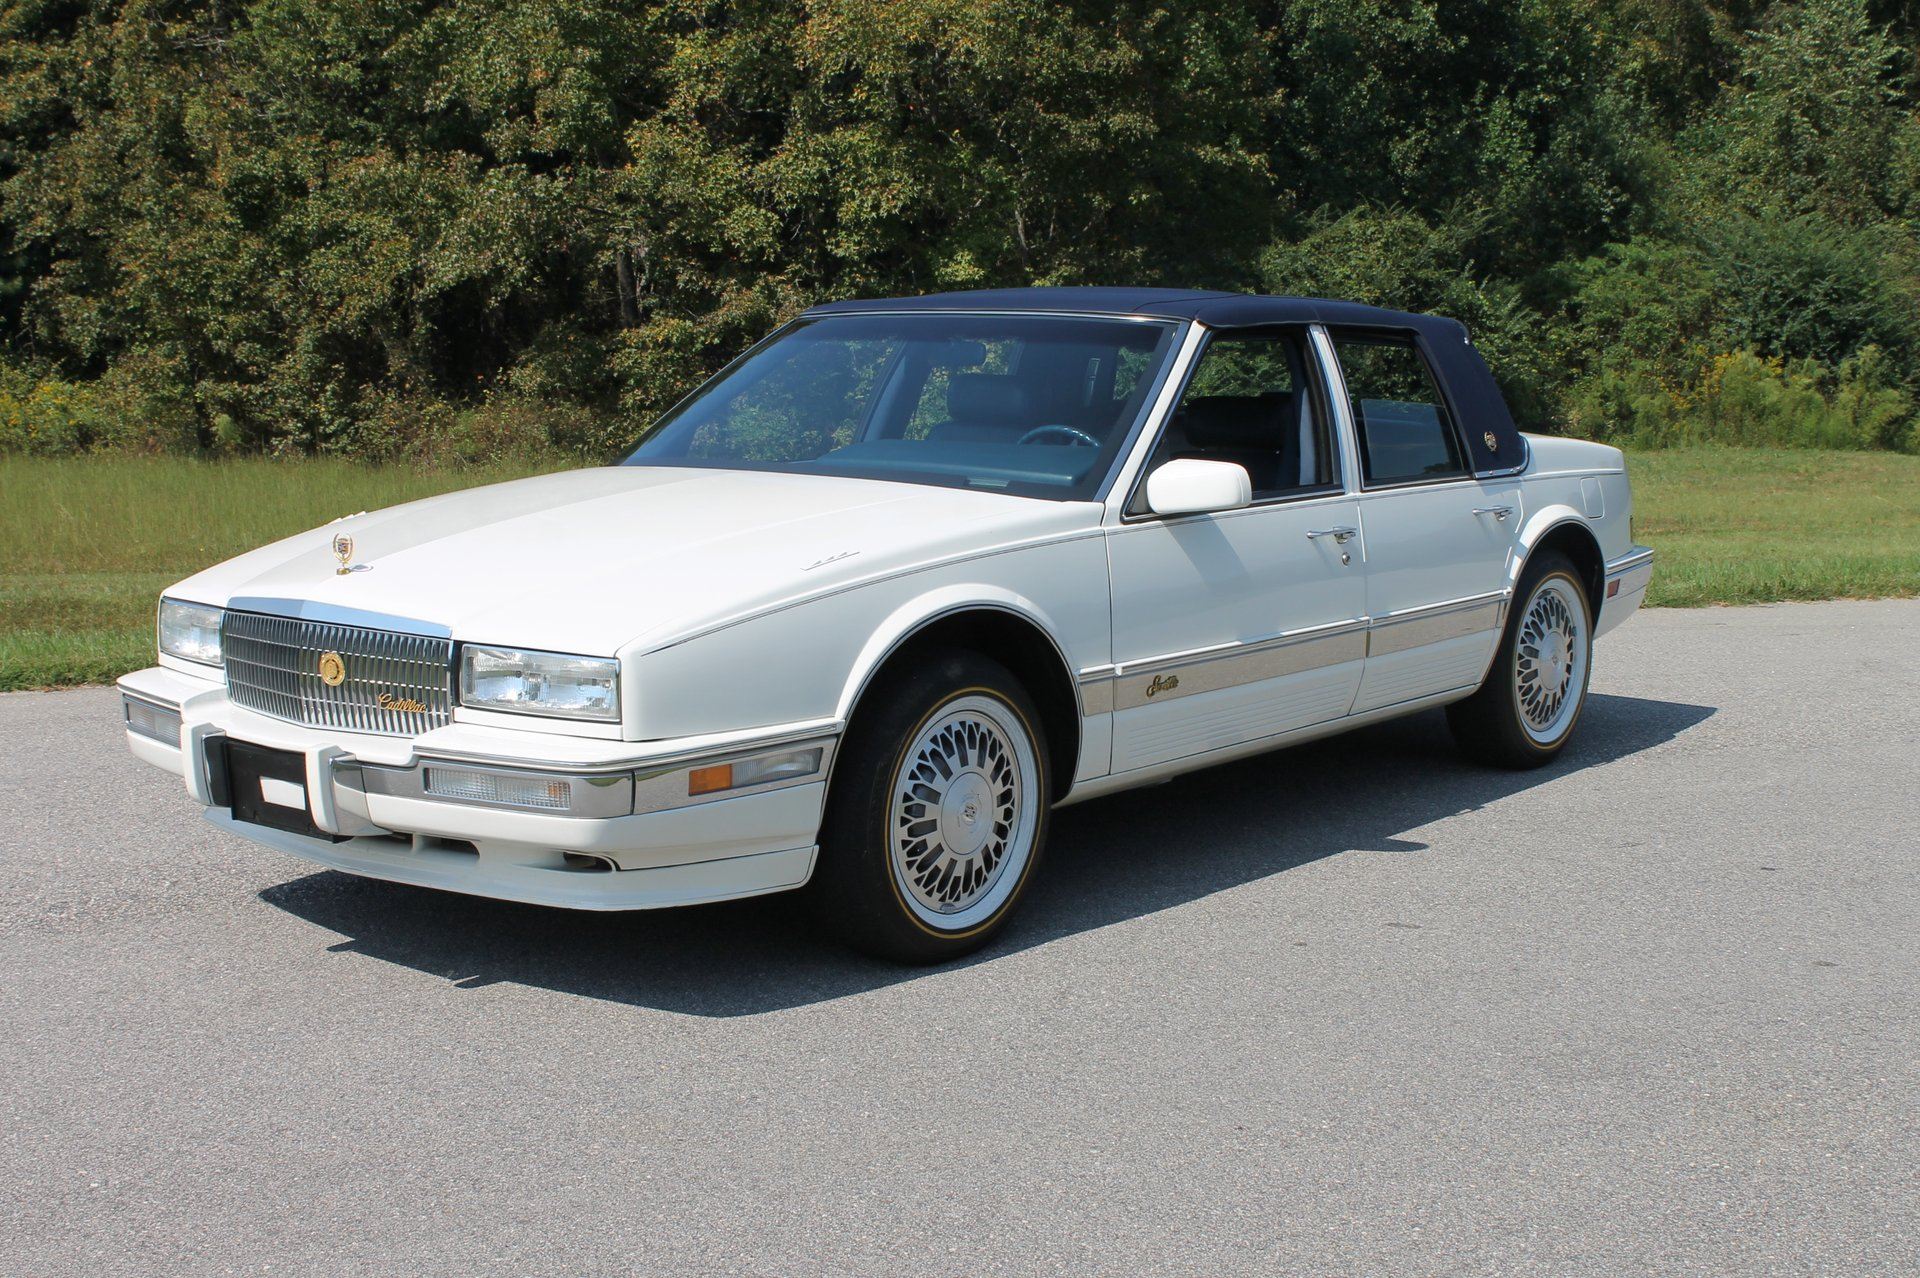 The Best 1991 Cadillac Seville